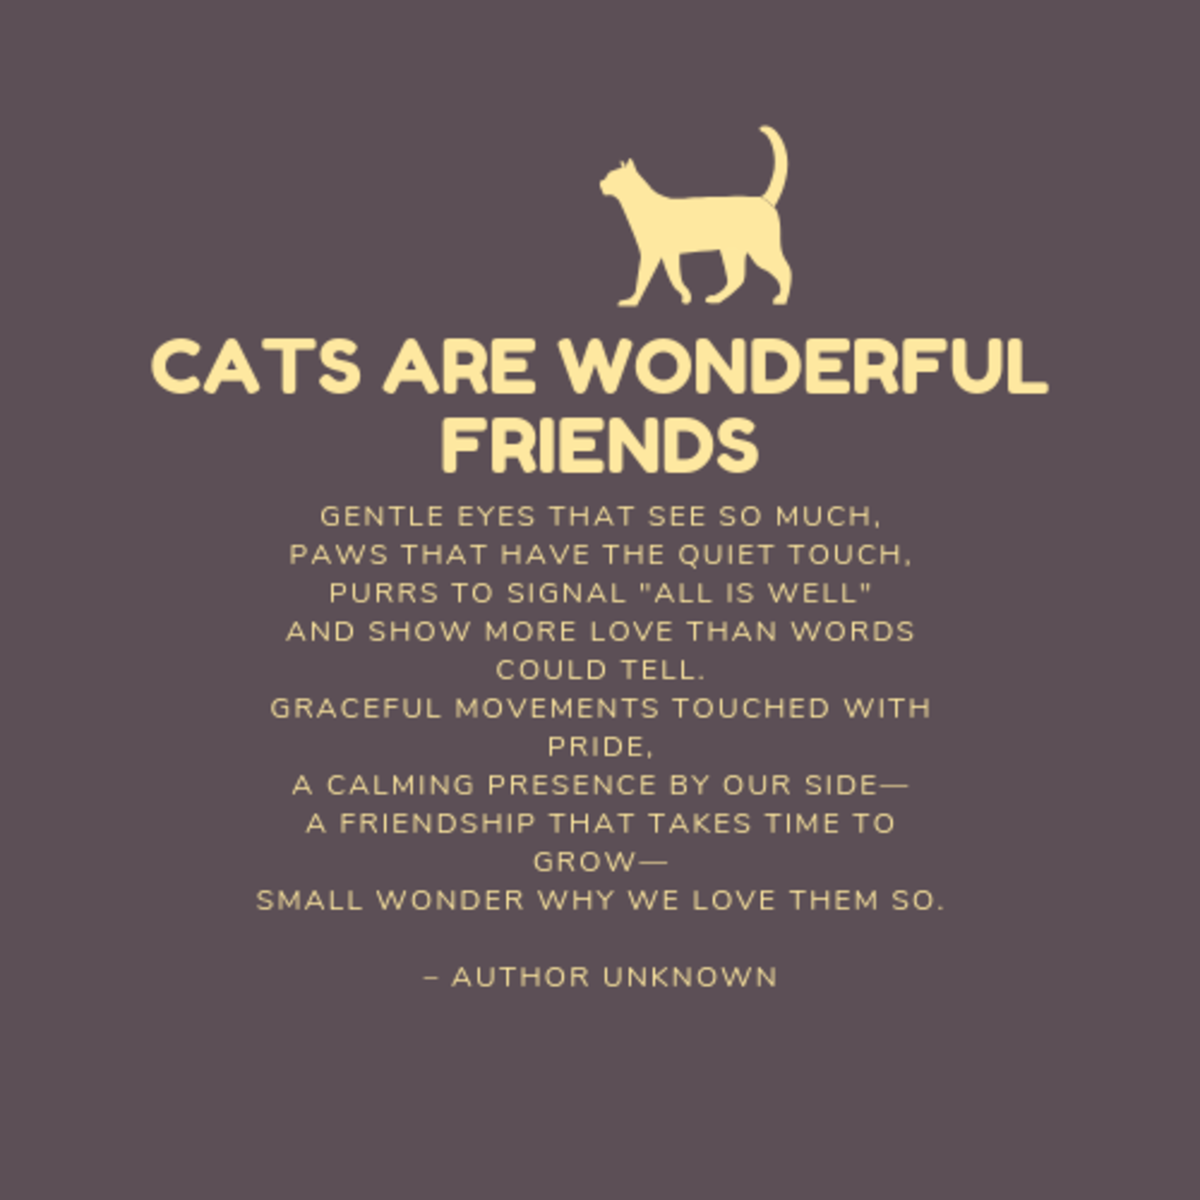 This is a wonderful poem about our feline friends.